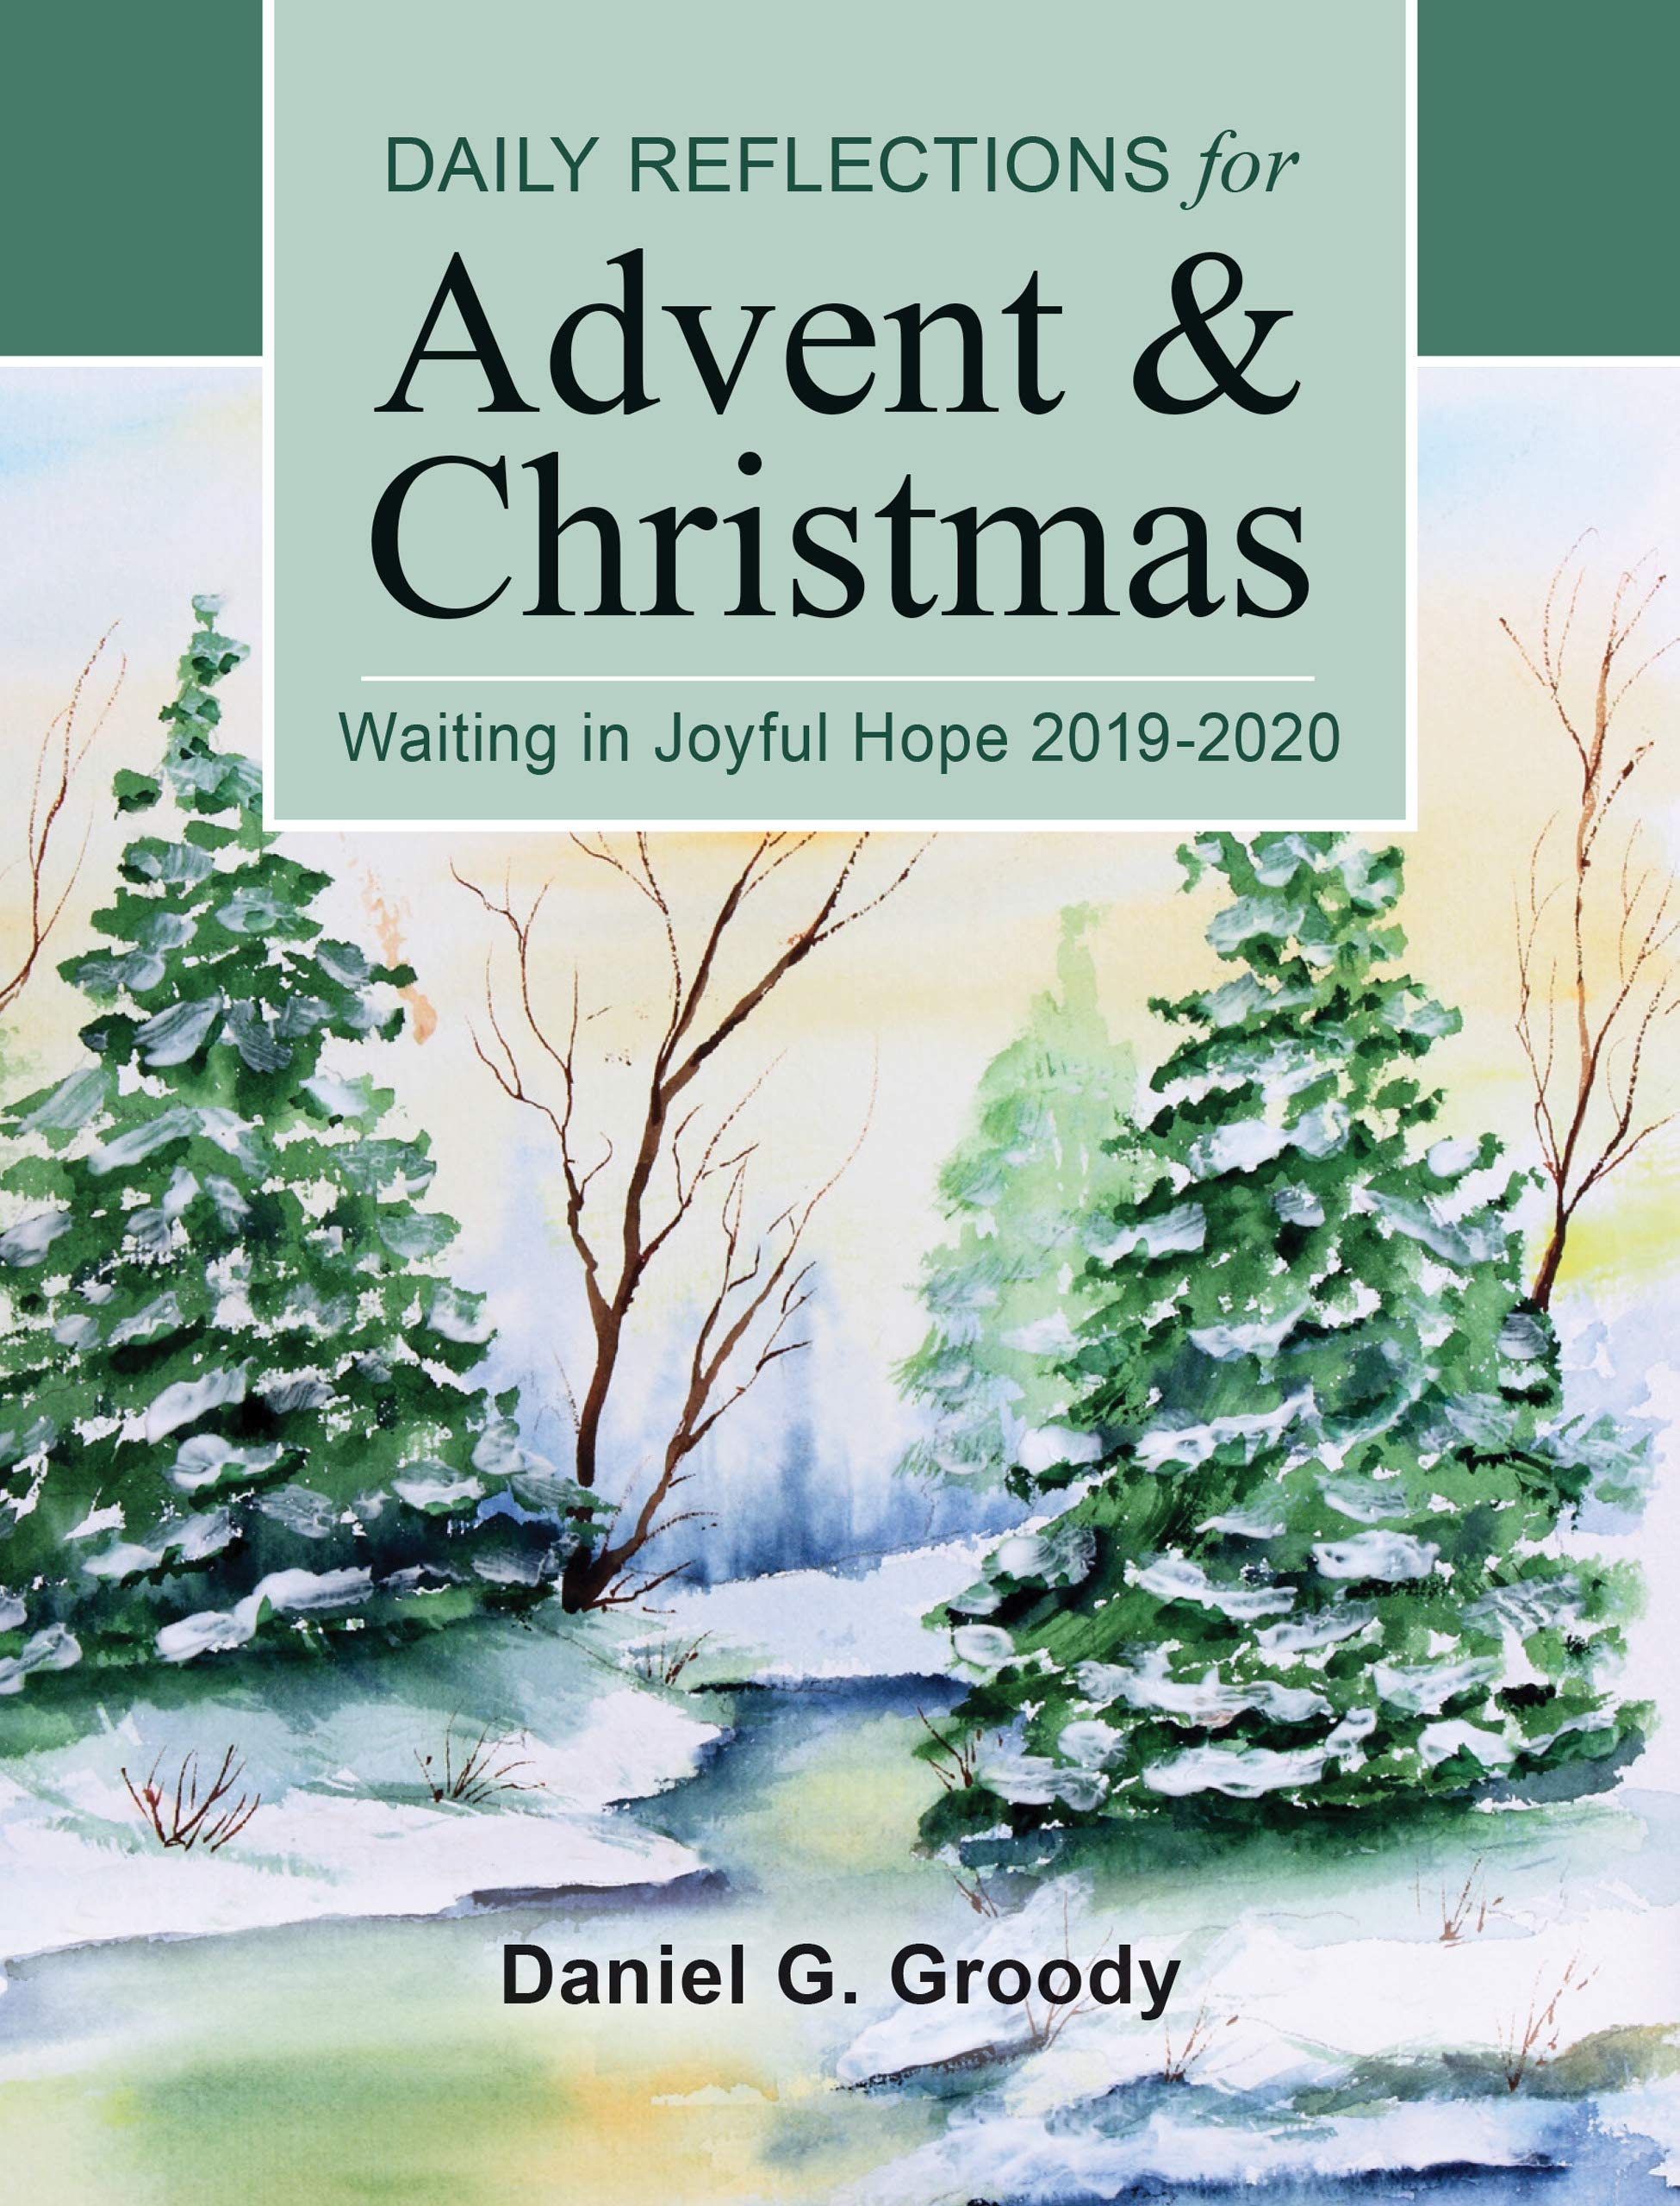 Christmas Reflections 2020 Waiting in Joyful Hope: Daily Reflections for Advent and Christmas